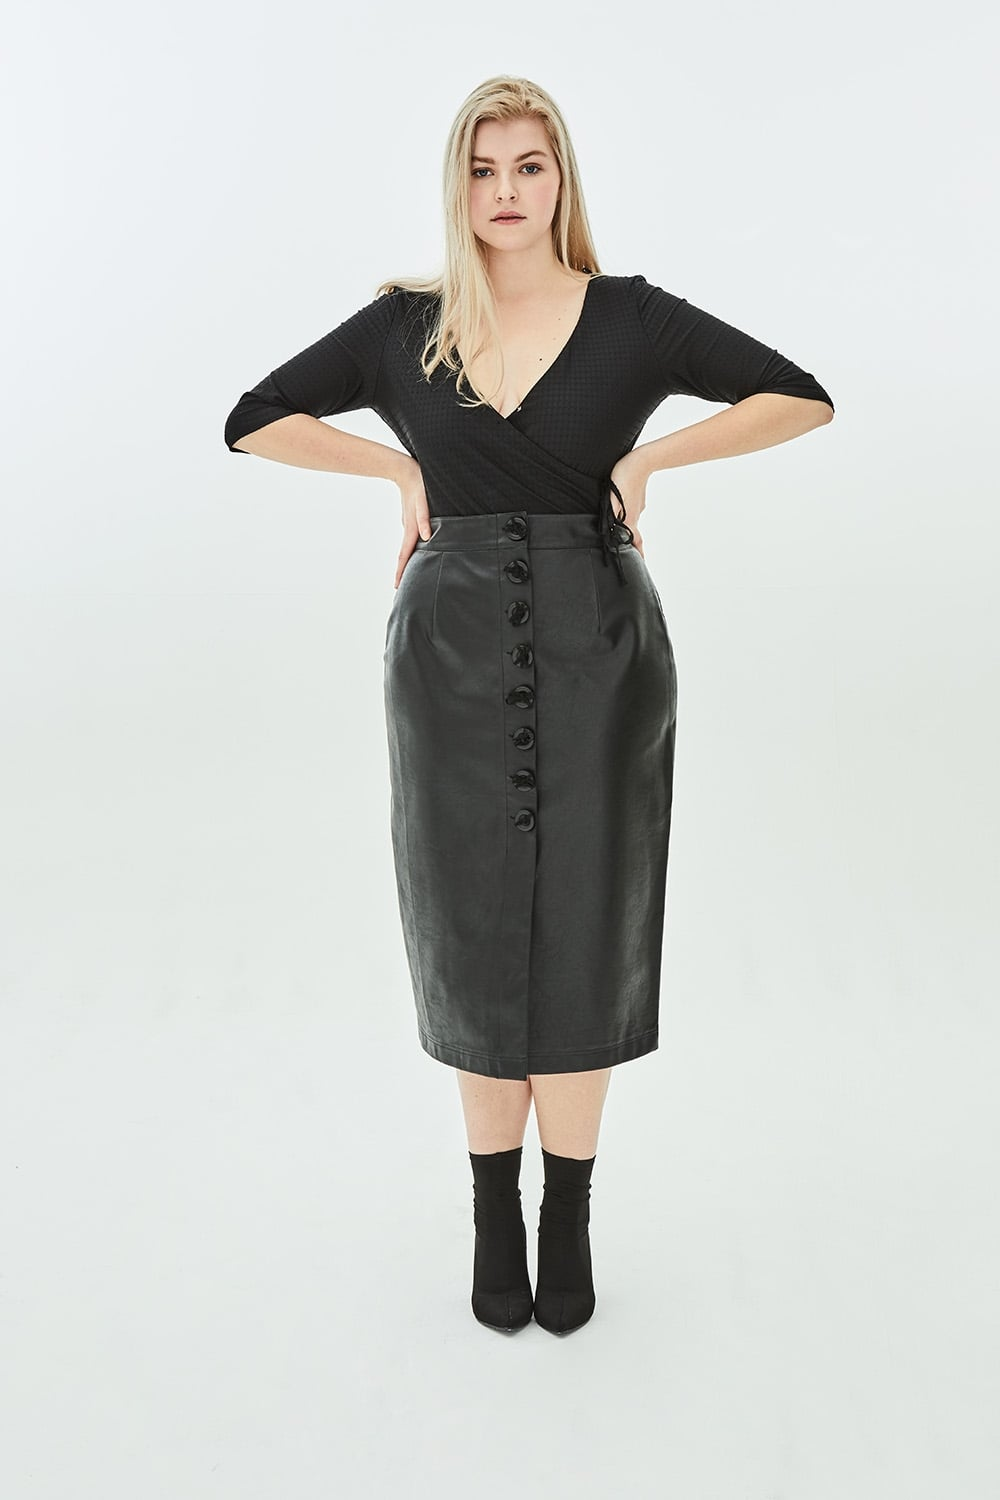 dome-bow-button-faux-leather-pencil-skirt-p5653-9988_image